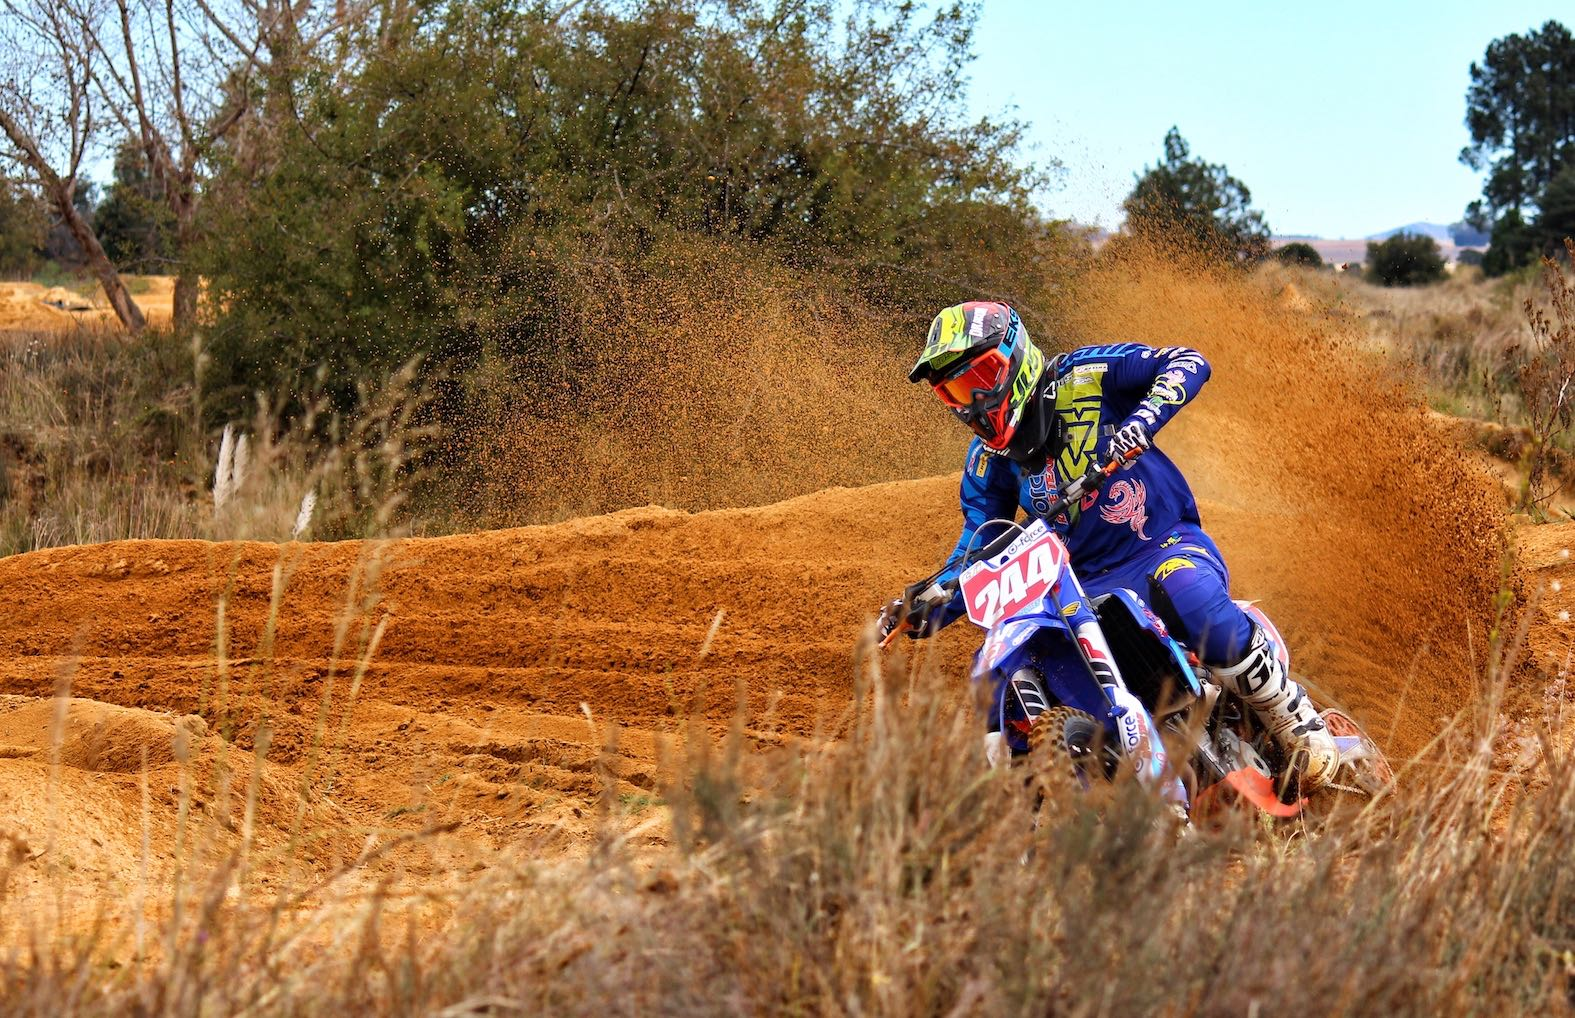 #SandDreams with Nanda Clowes motocross video and interview feature